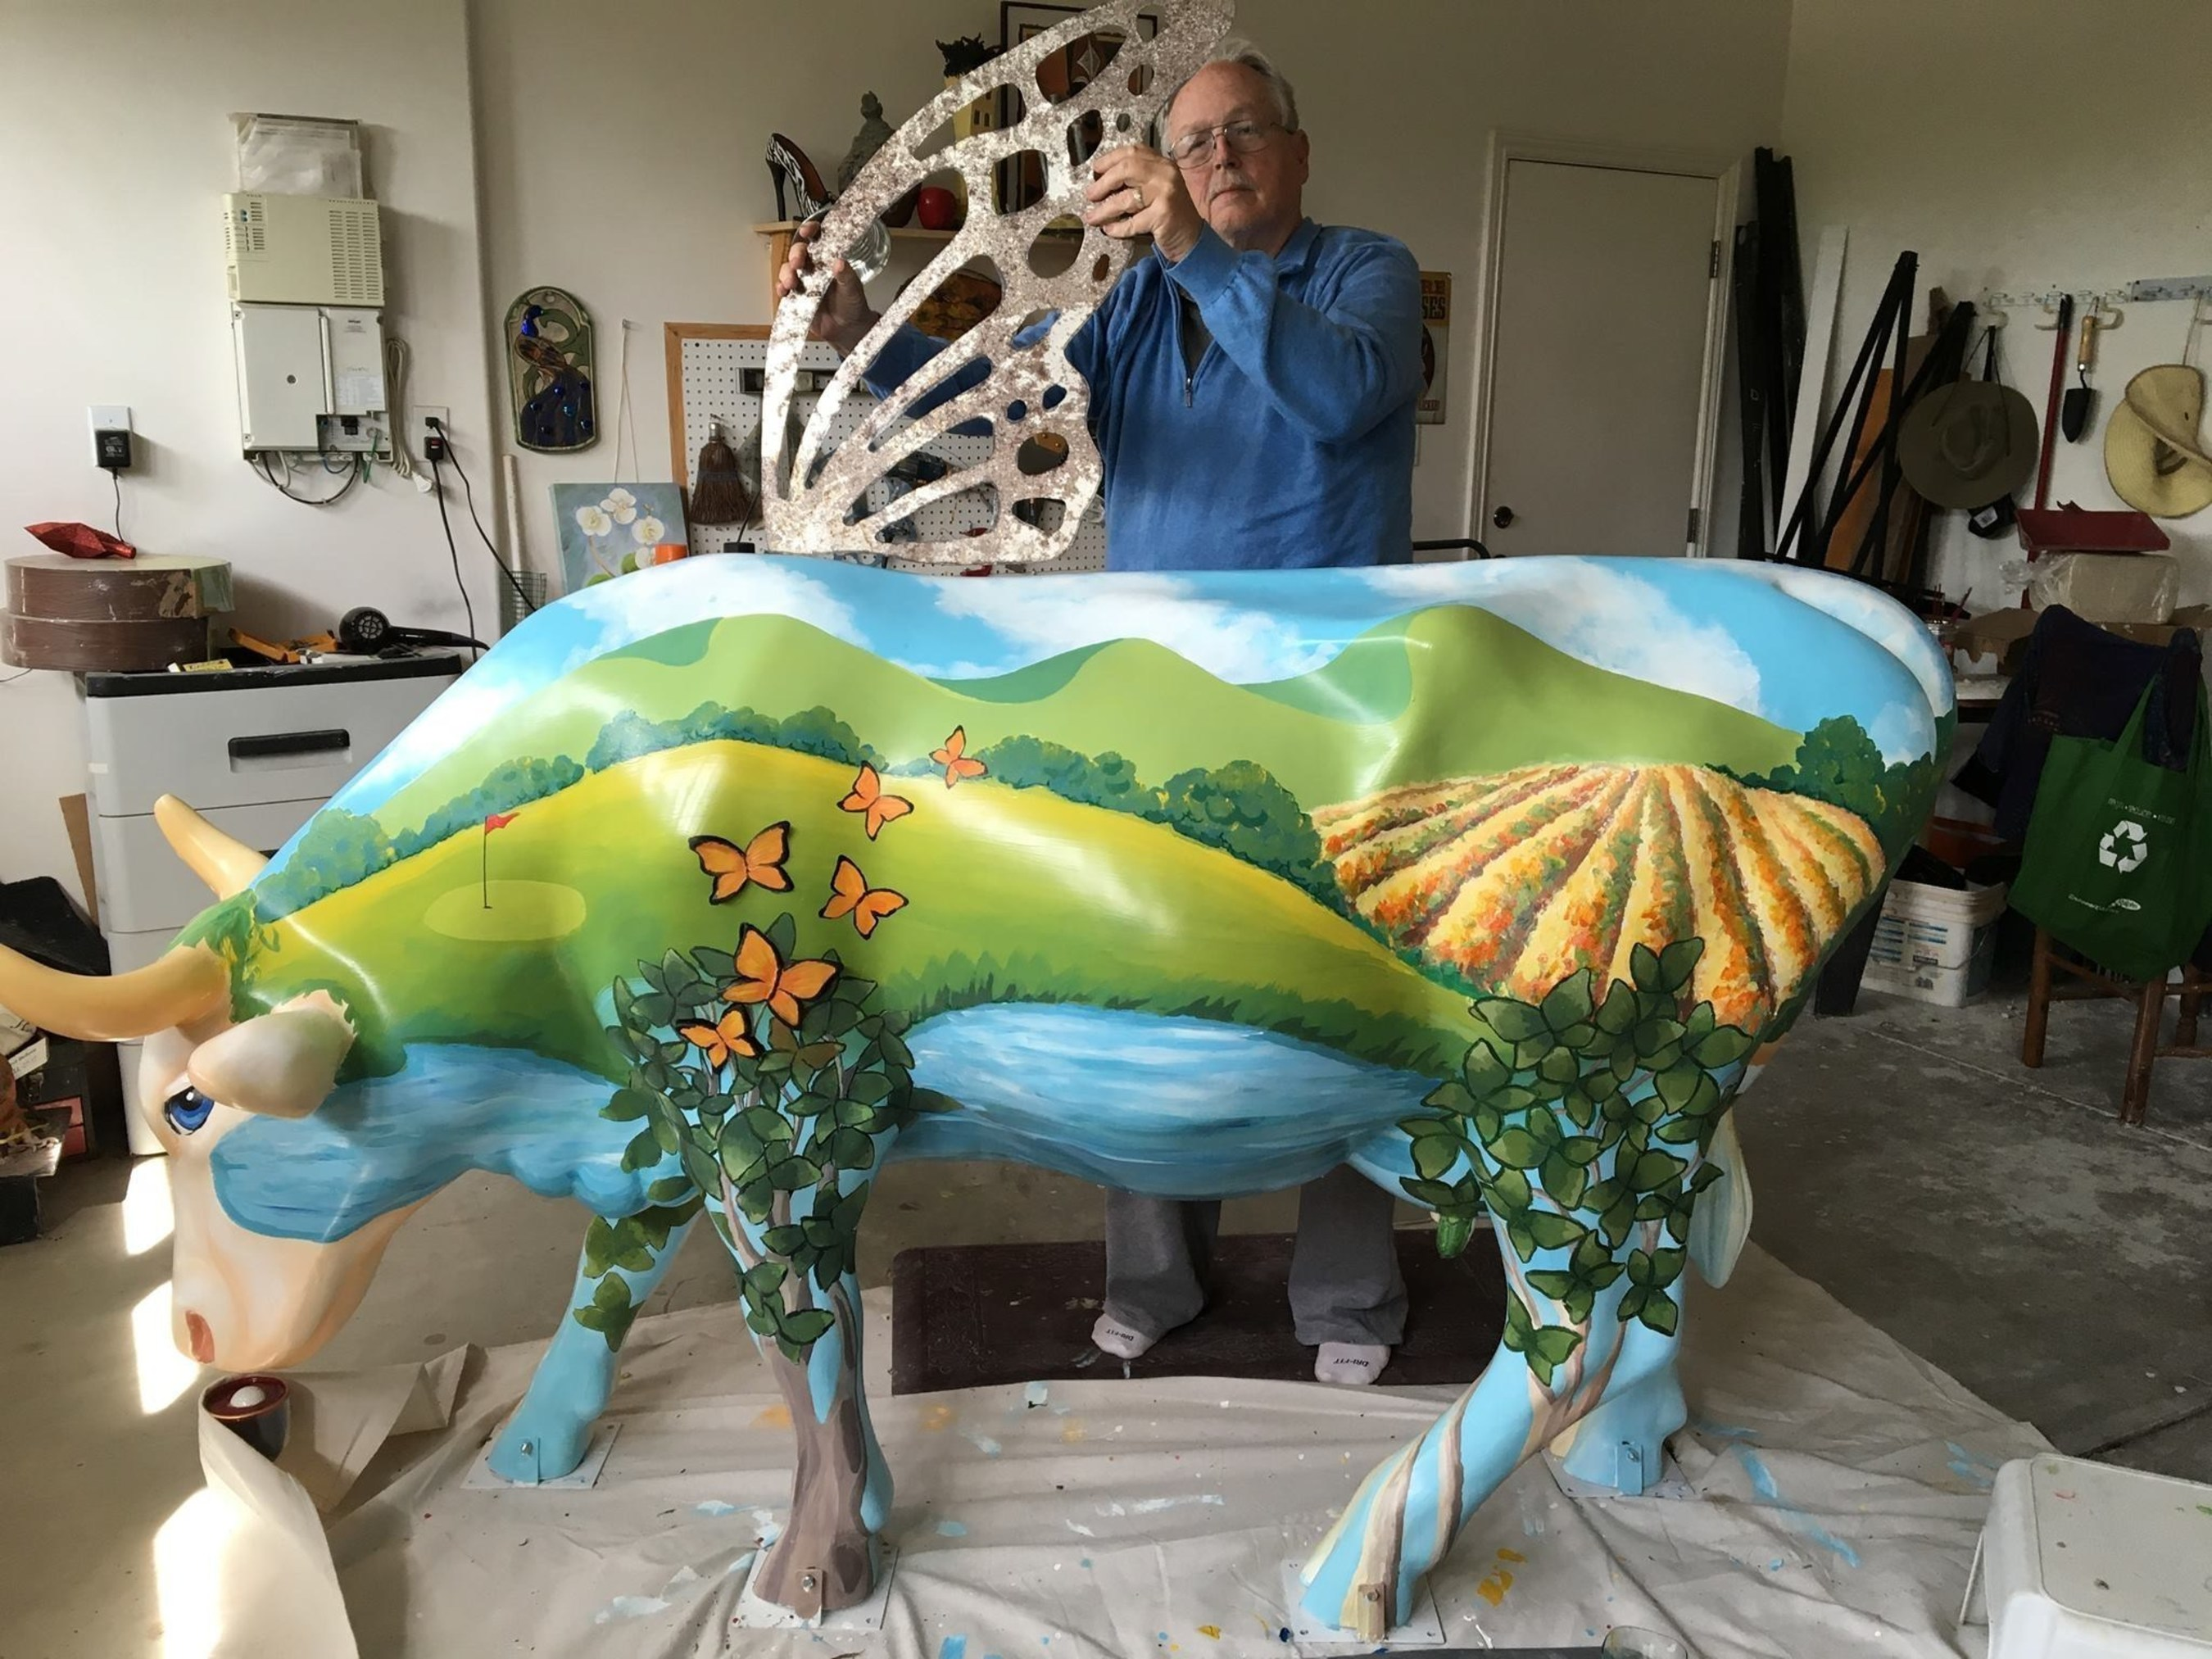 """101 artfully decorated, life-size cows will be on parade during CowParade 2016, taking place this year in San Luis Obispo County on California's gorgeous Central Coast. Pictured: Nipomo, CA artist Karen Floyd's """"NipoMOO,"""" getting finishing touches, including monarch butterfly wings. """"NipoMOO"""" will be just one of 101 cows displayed throughout San Luis Obispo County for CowParade 2016."""